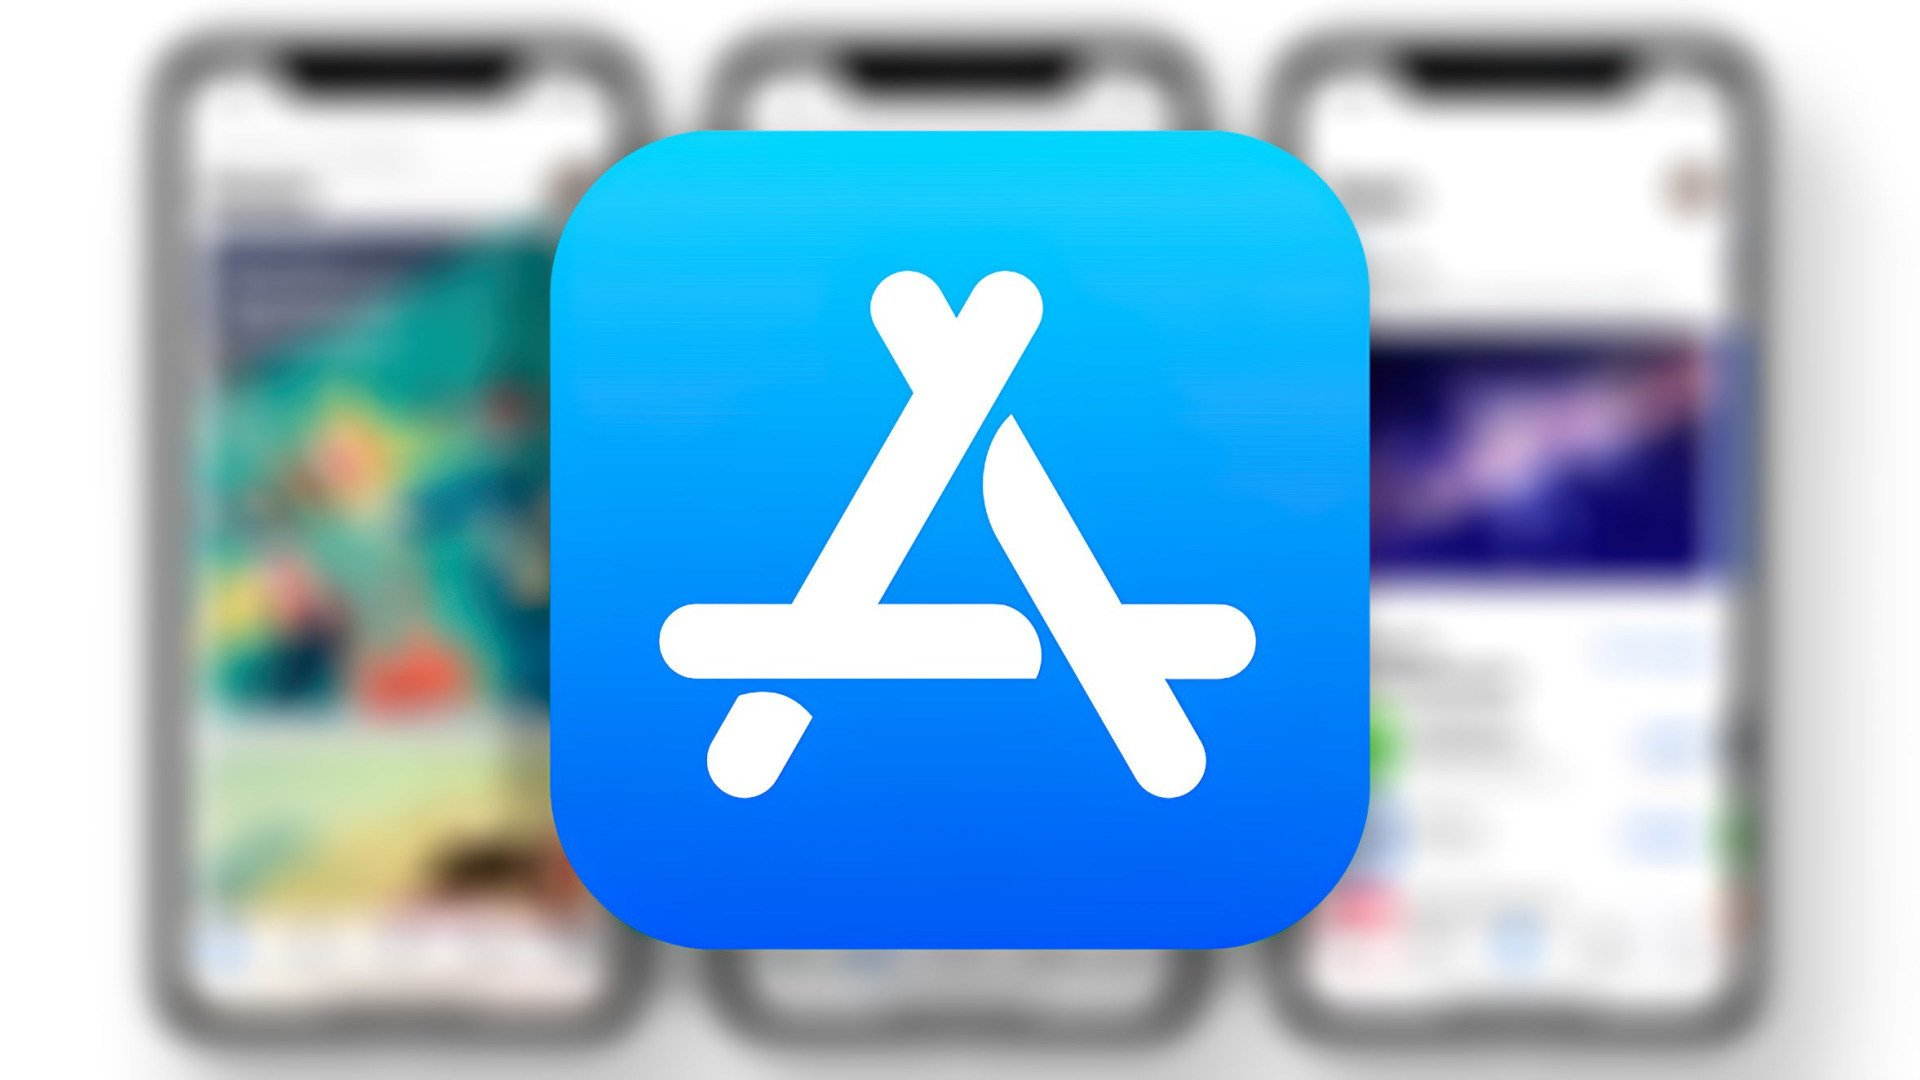 Apple, iOS, Apps, Software, App Store, Downloads, Appstore, Apple App Store, Programme